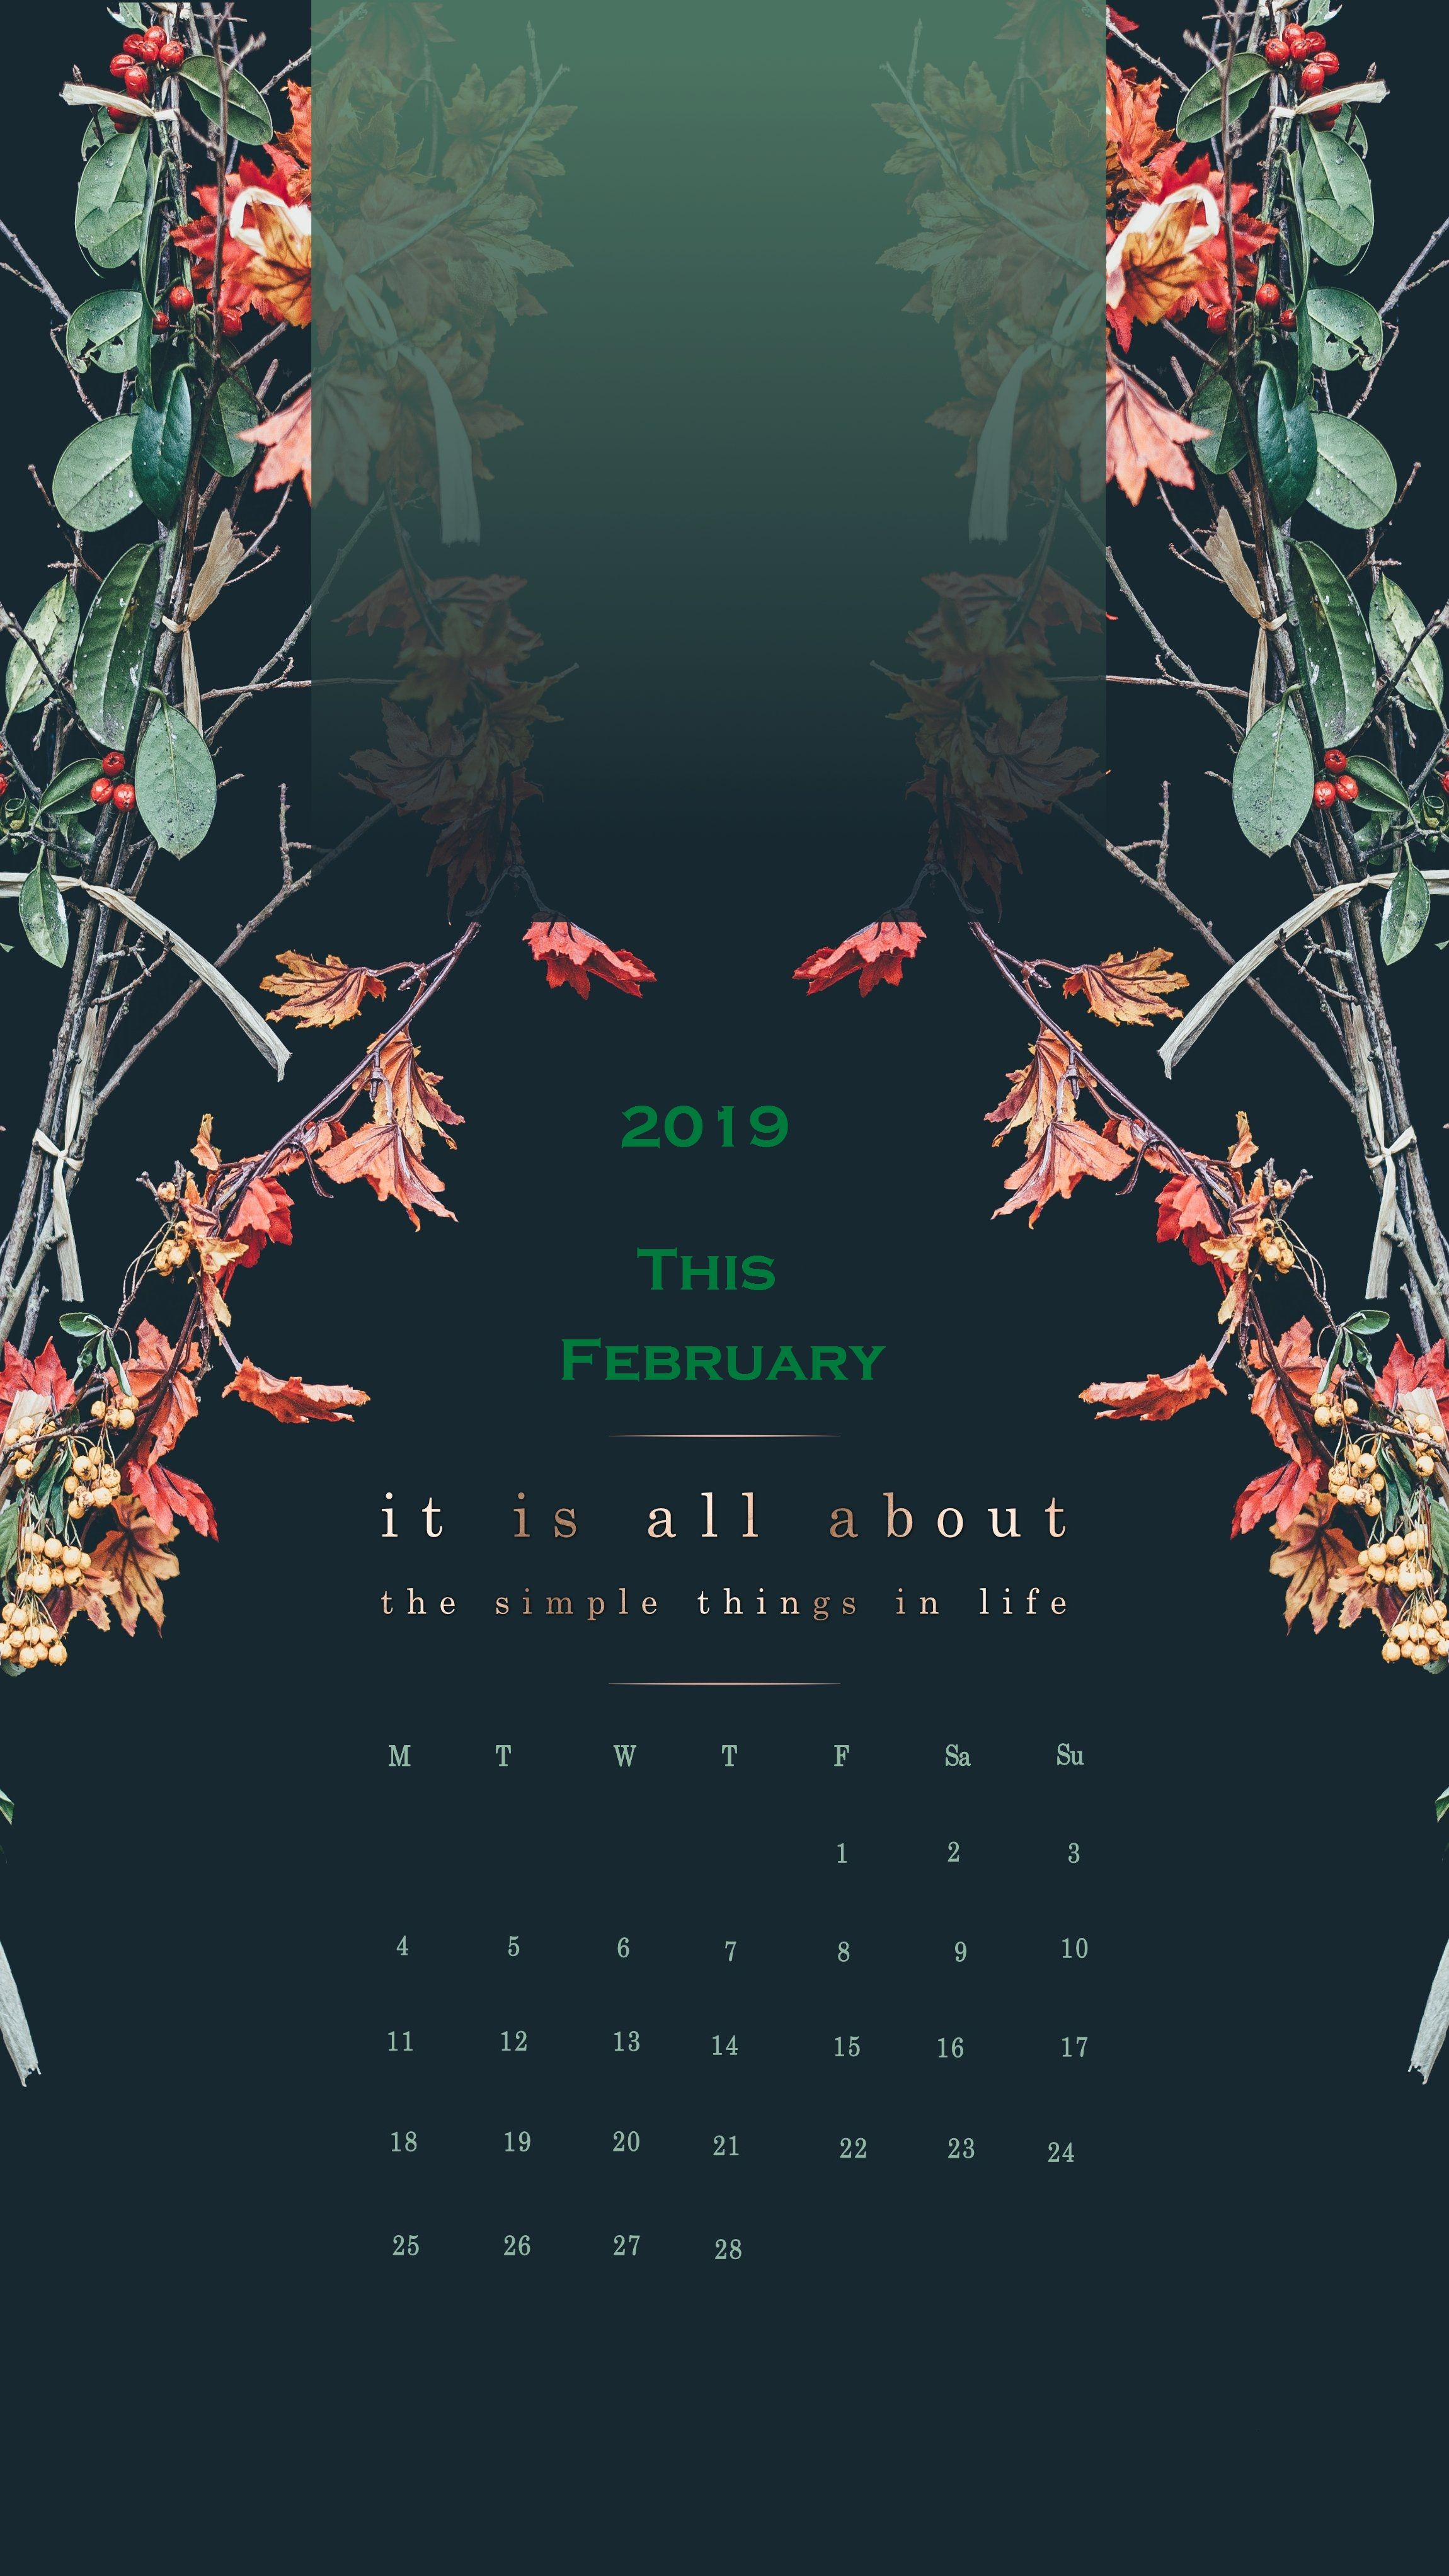 February 2019 iPhone Calendar Wallpaper (With images)